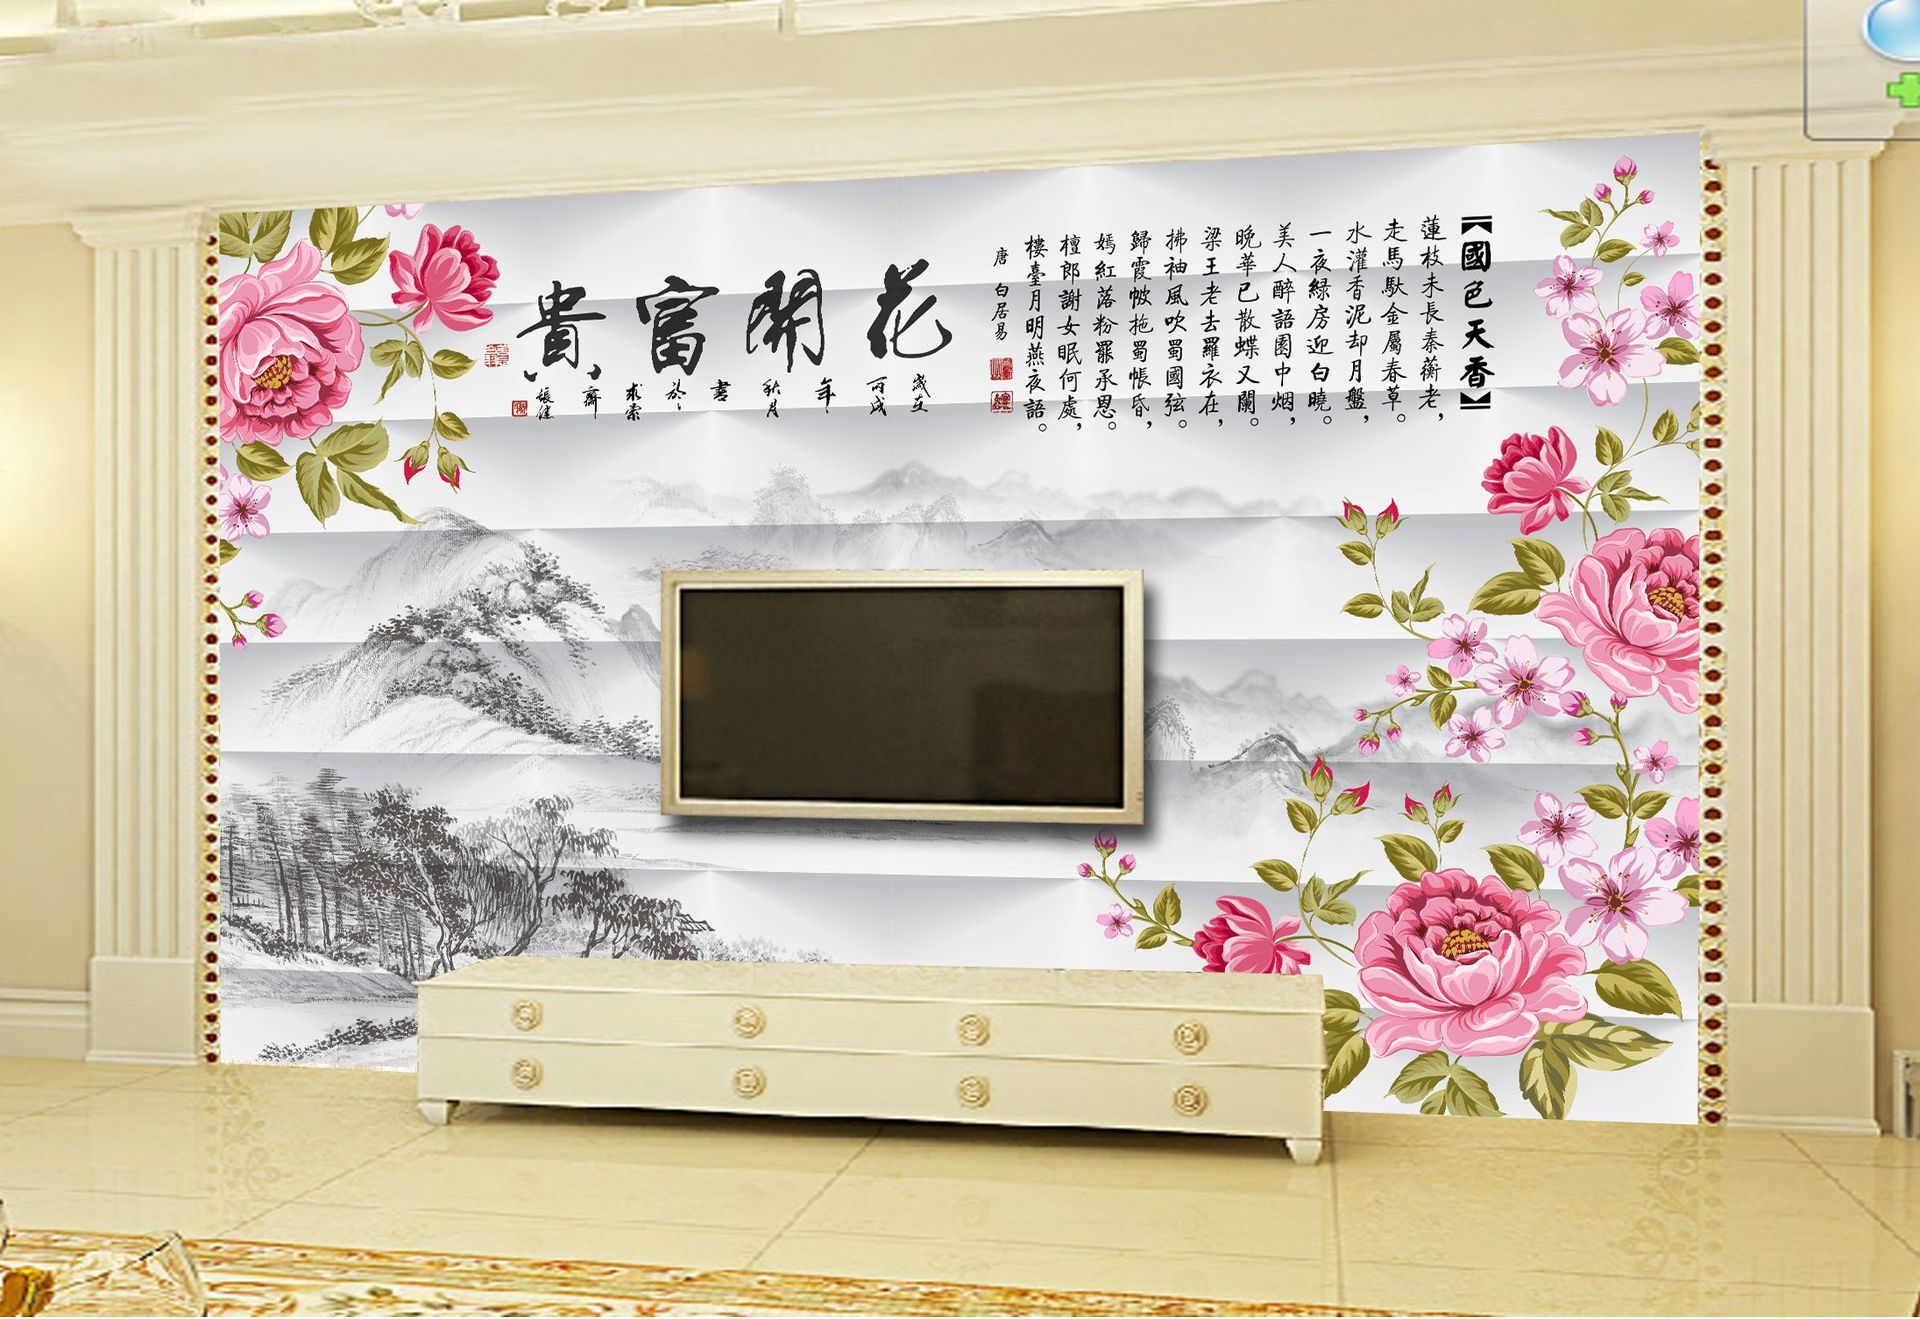 Seamless Home Improvement 3D Wall Cloth Bedroom TV Background Wallpaper Flower Large Mural Non-woven Wallpaper Nonwoven Fabric